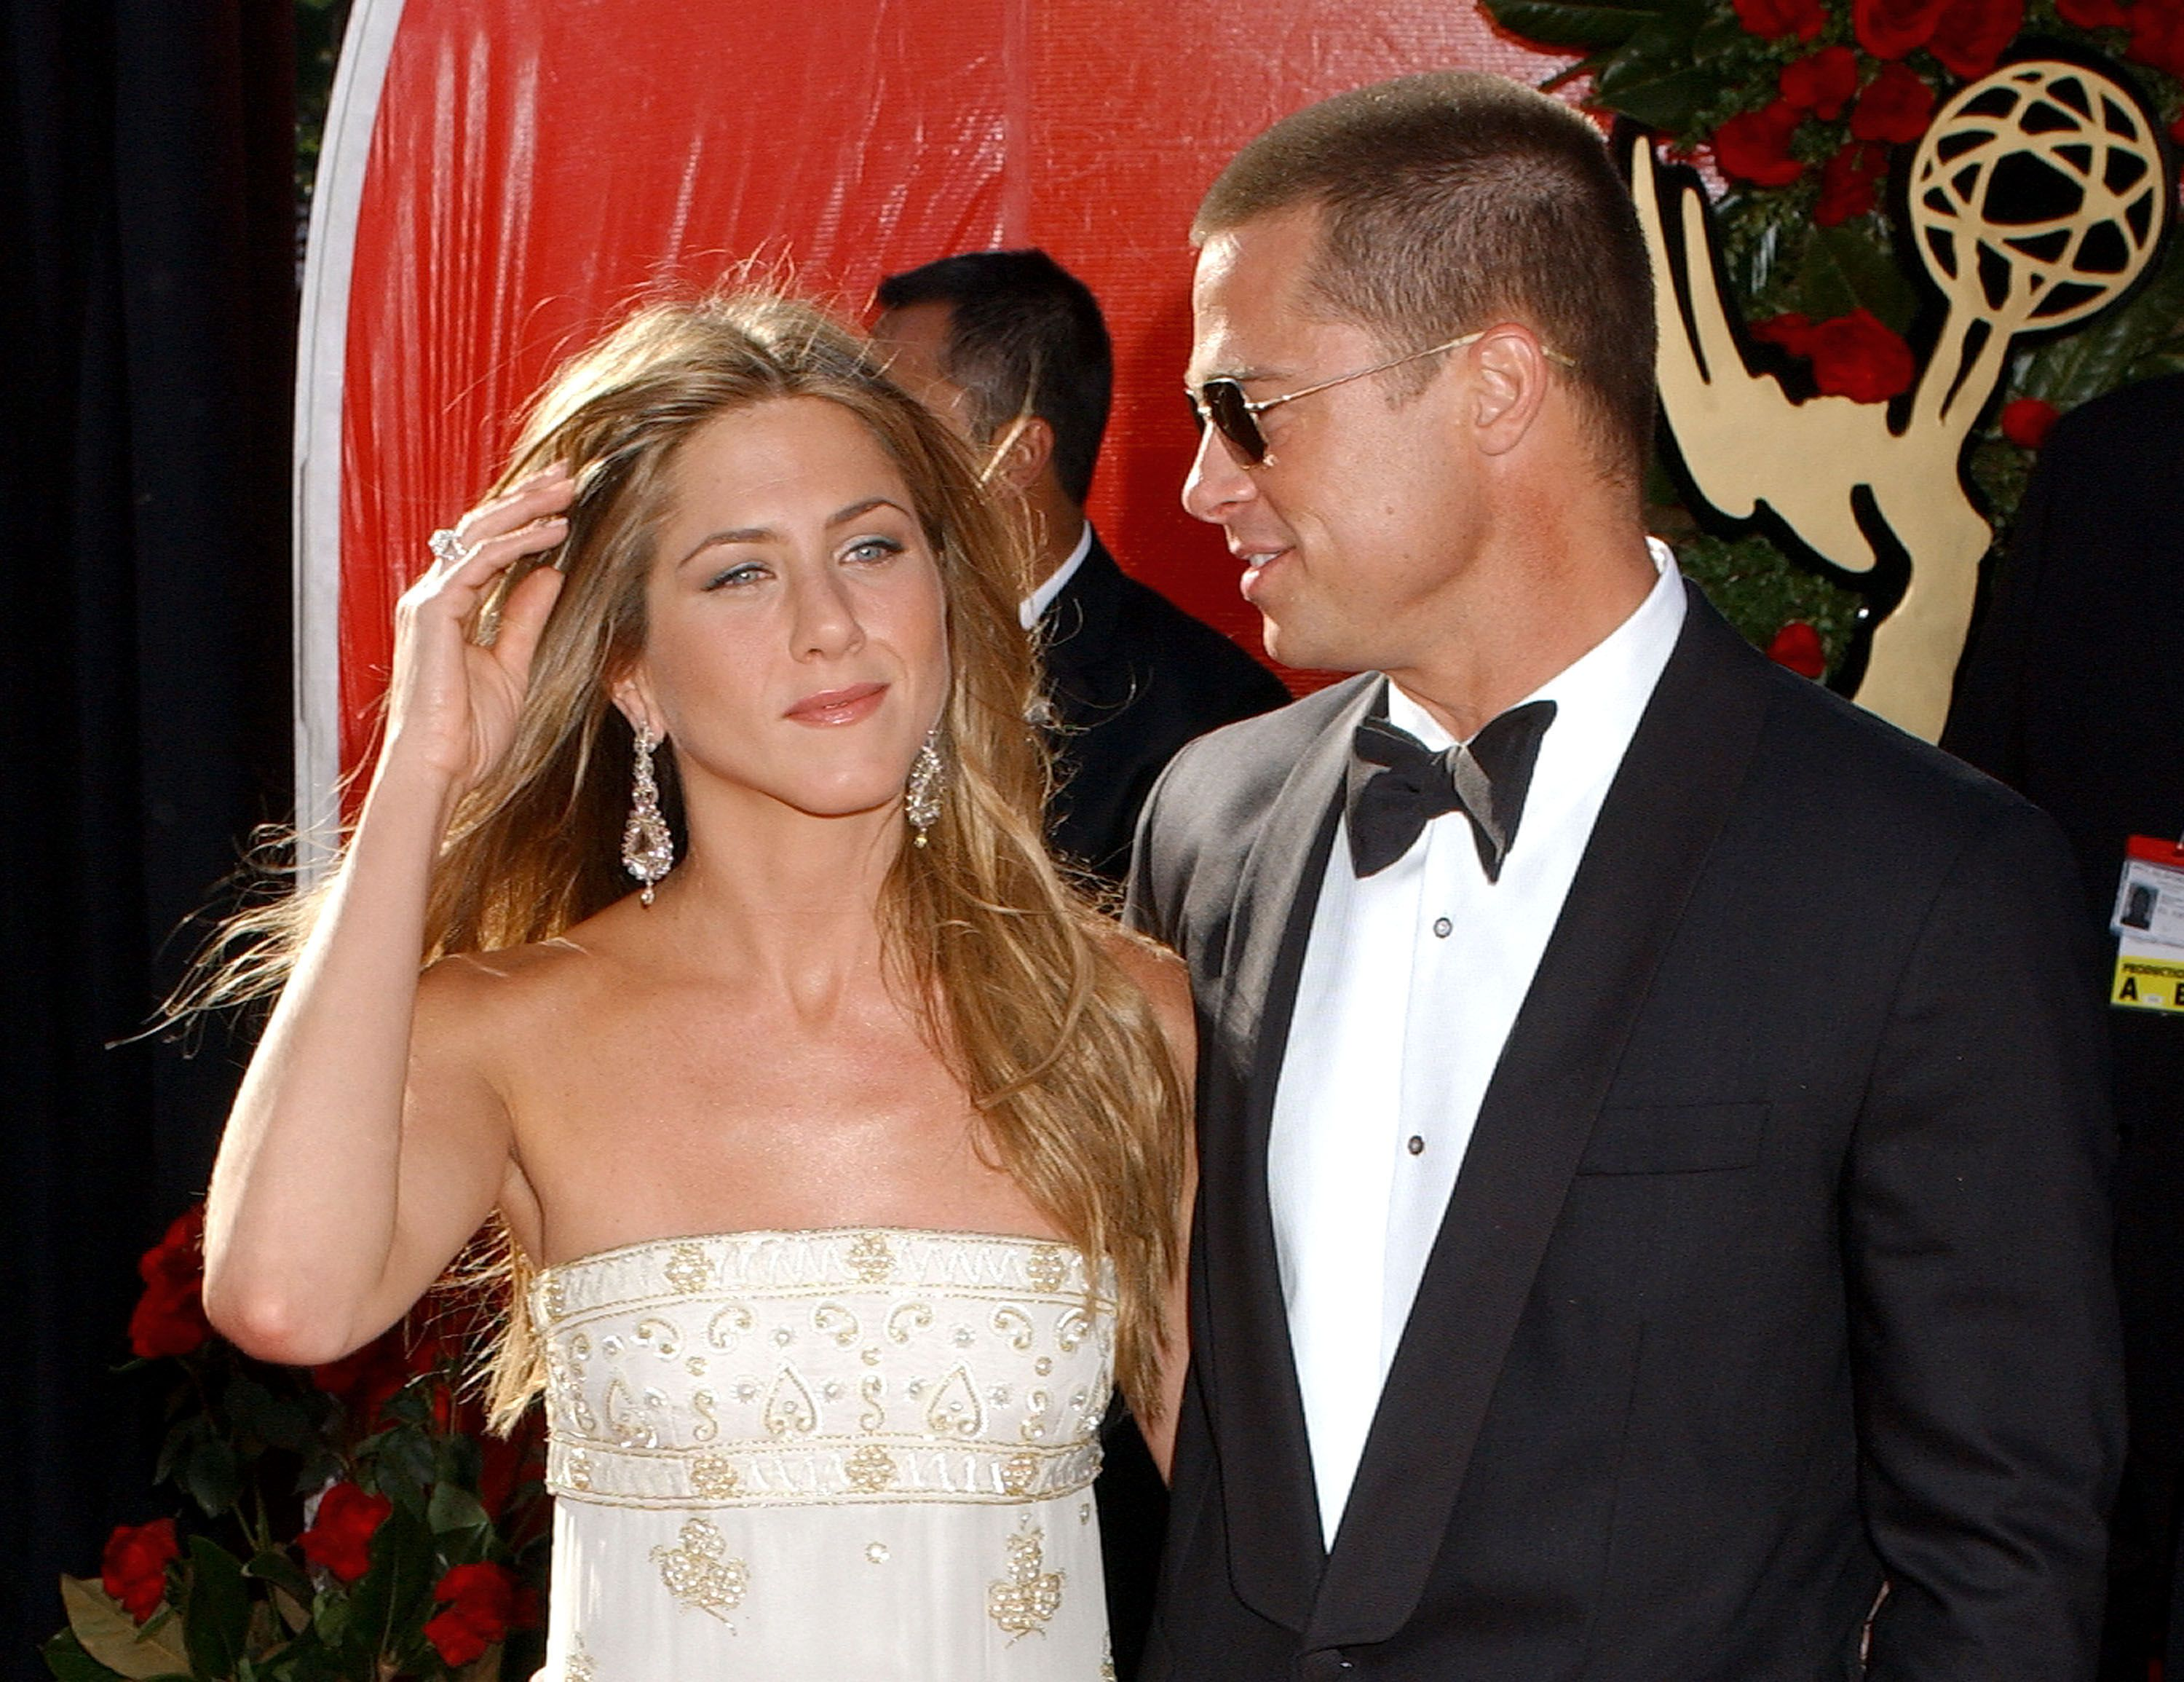 Jennifer Aniston and Brad Pitt at the 56th Annual Primetime Emmy Awards in Los Angeles in 2004 | Source: Getty Images